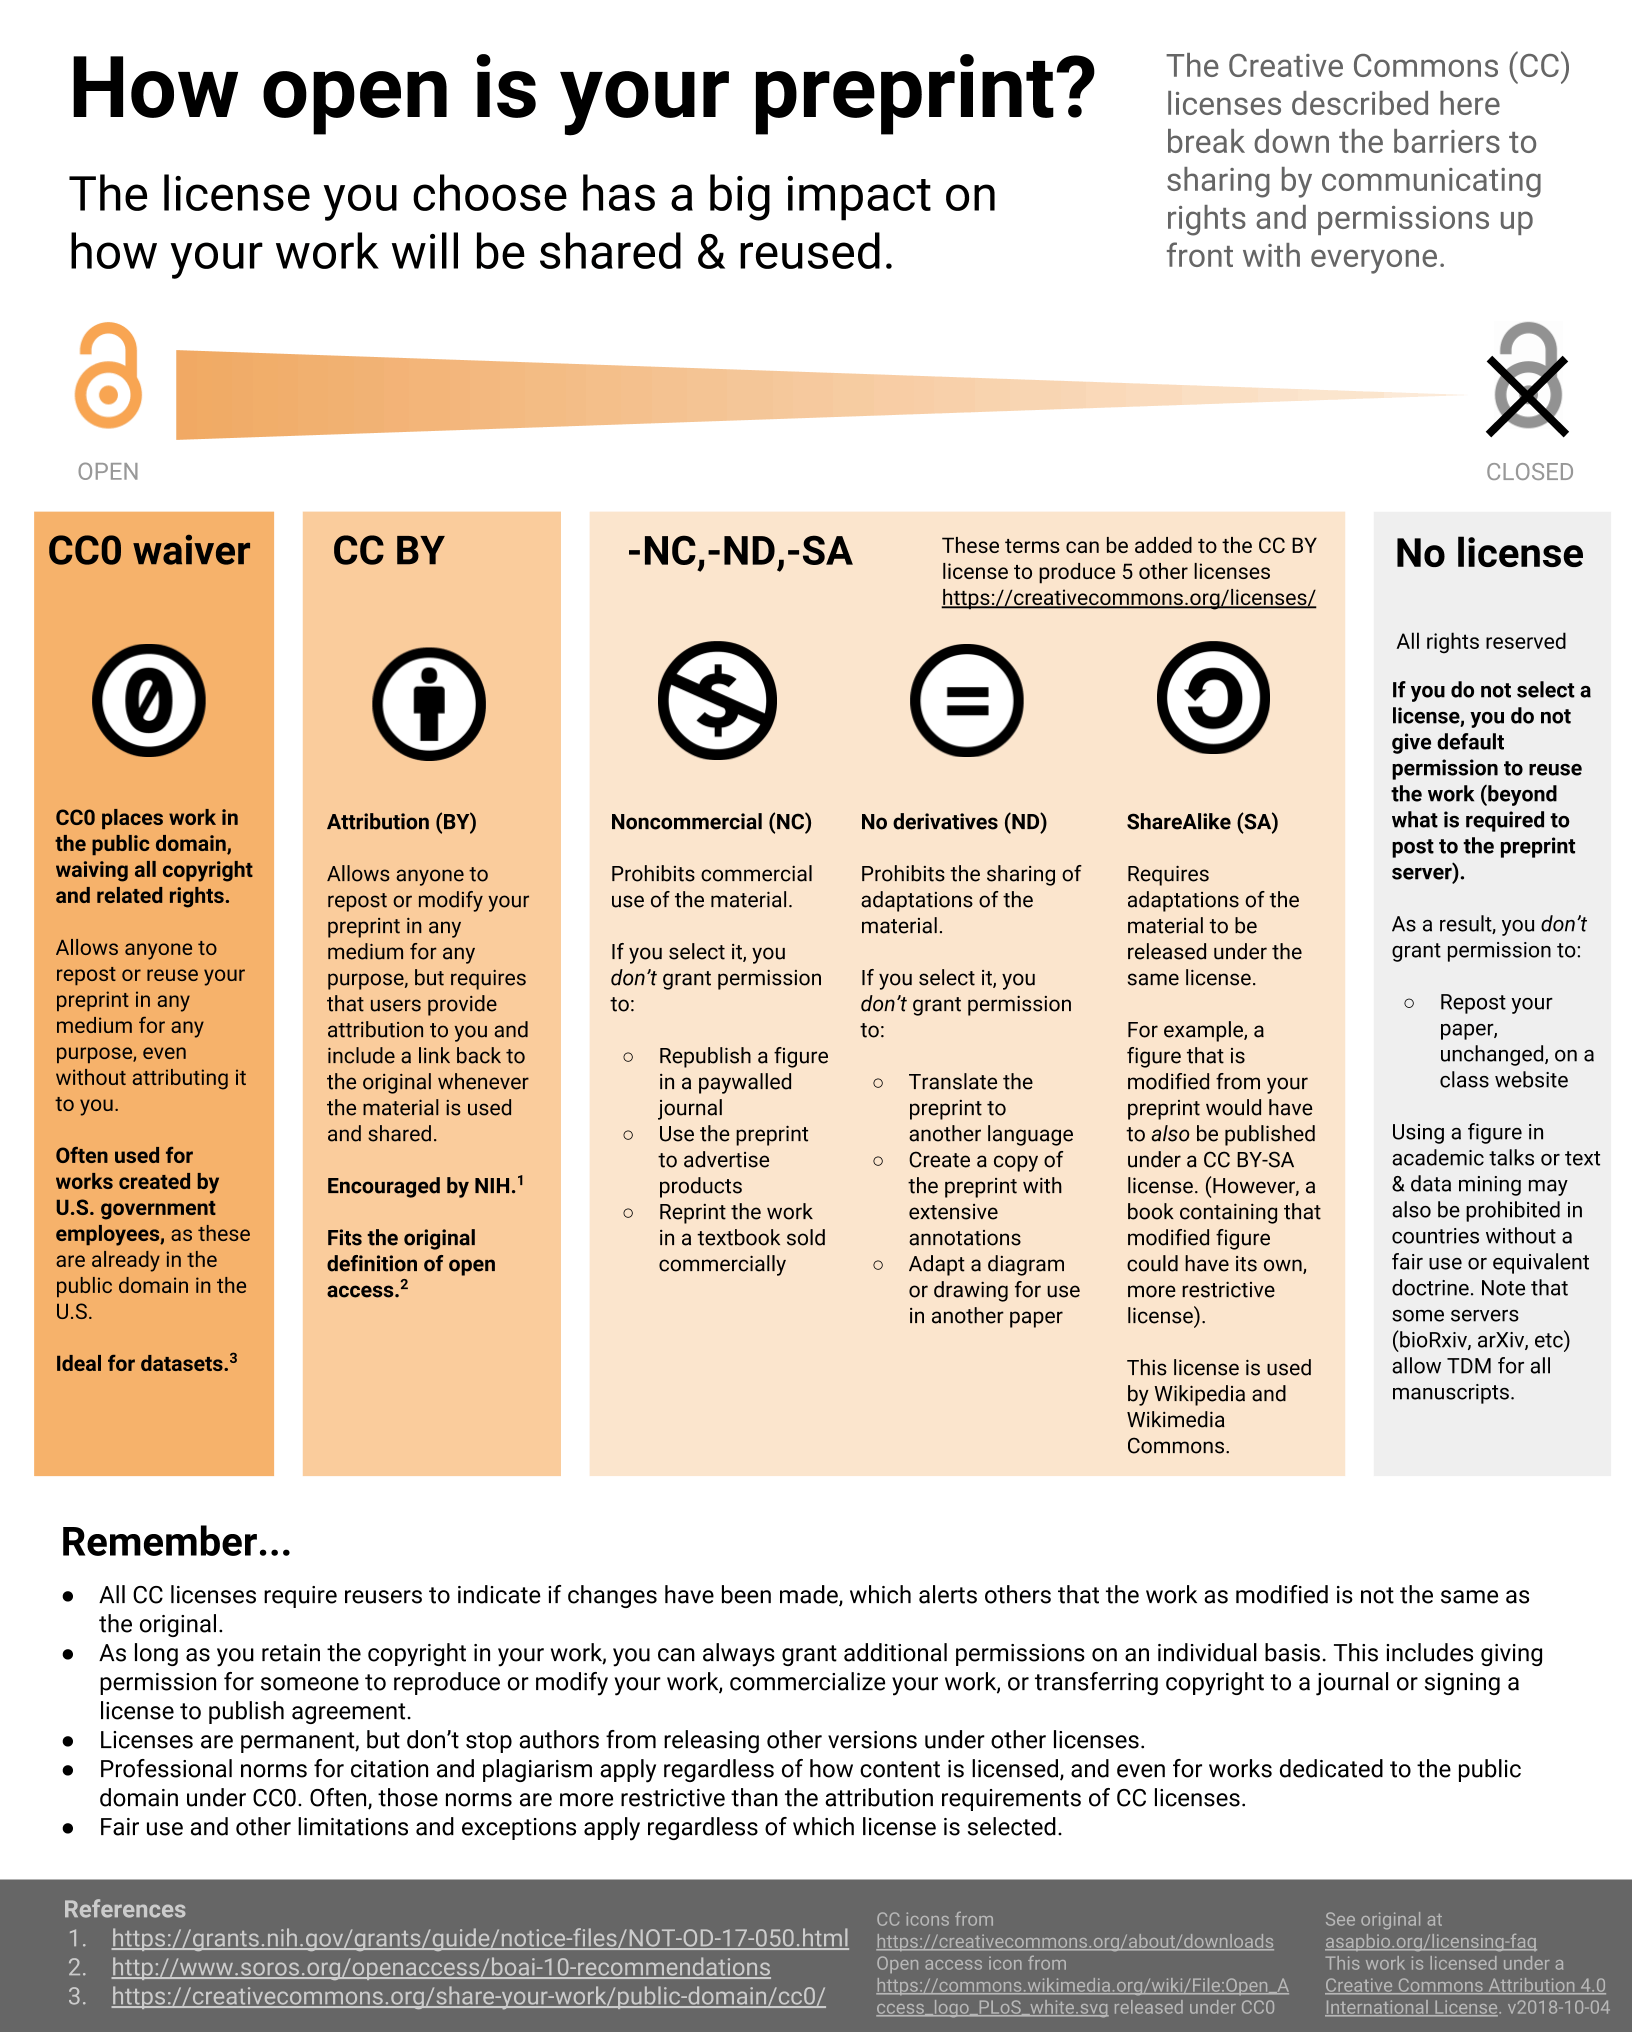 Infographic about licensing terms and preprint reuse